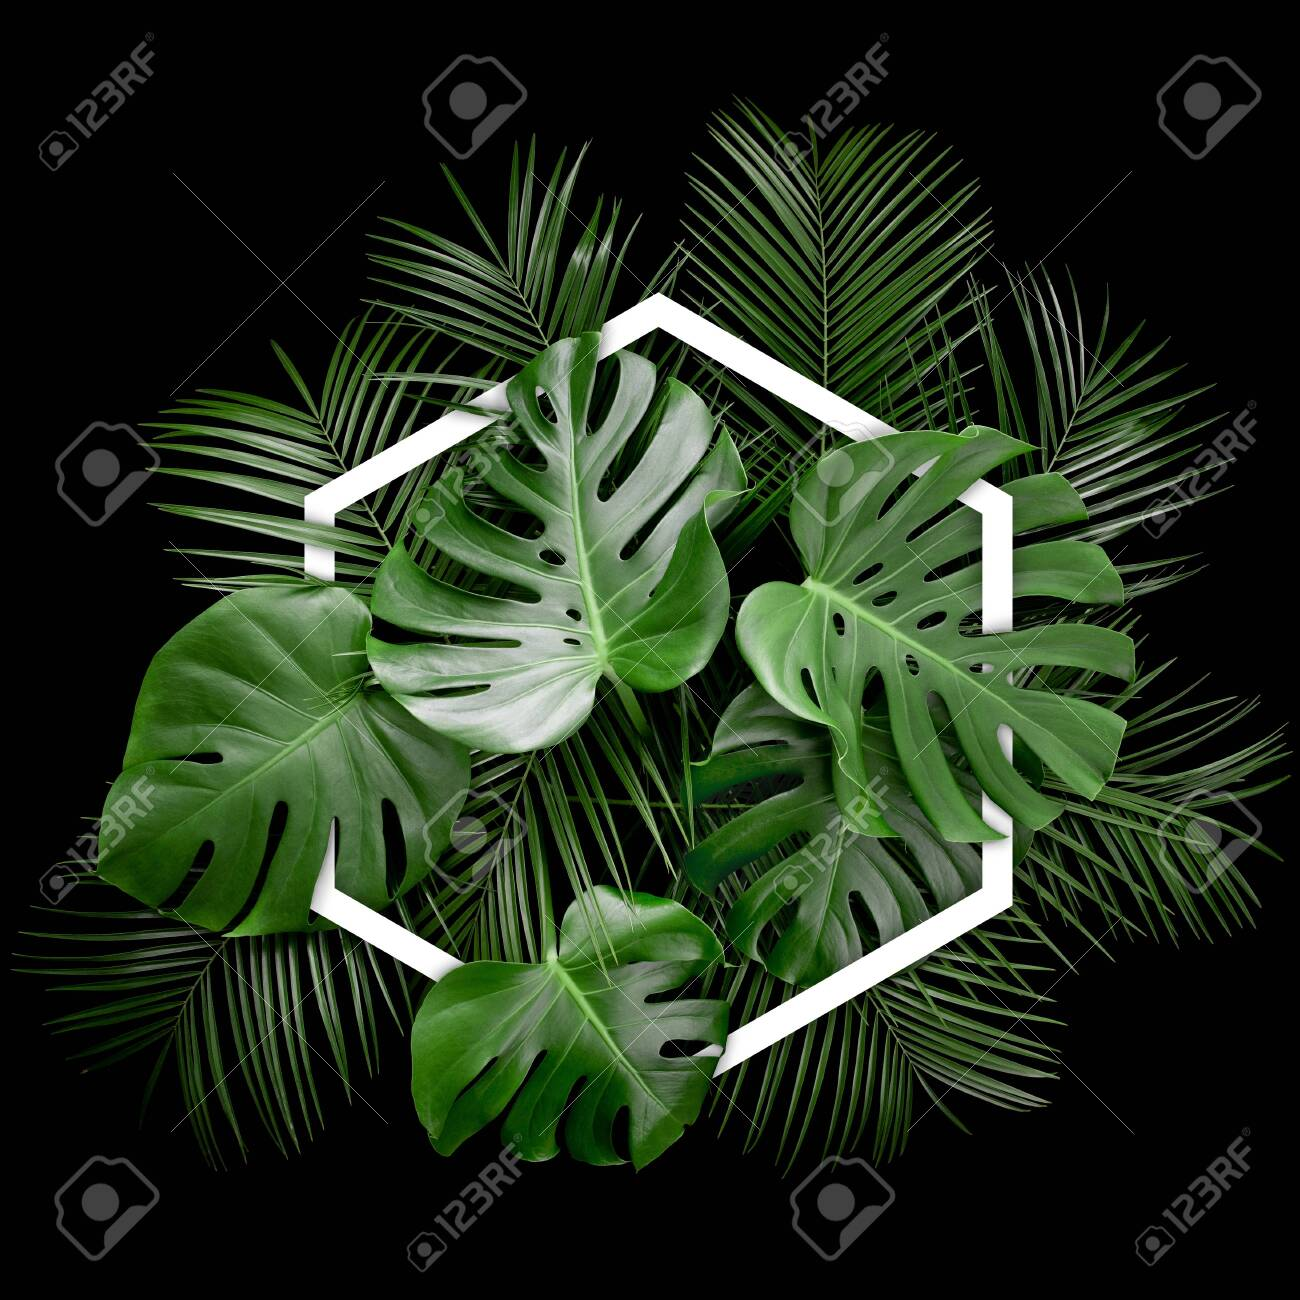 Creative Arrangement Of Tropical Monstera Palm Leaves With Hexagonal Stock Photo Picture And Royalty Free Image Image 121286752 Tropical rainforest plants that can be grown. 123rf com